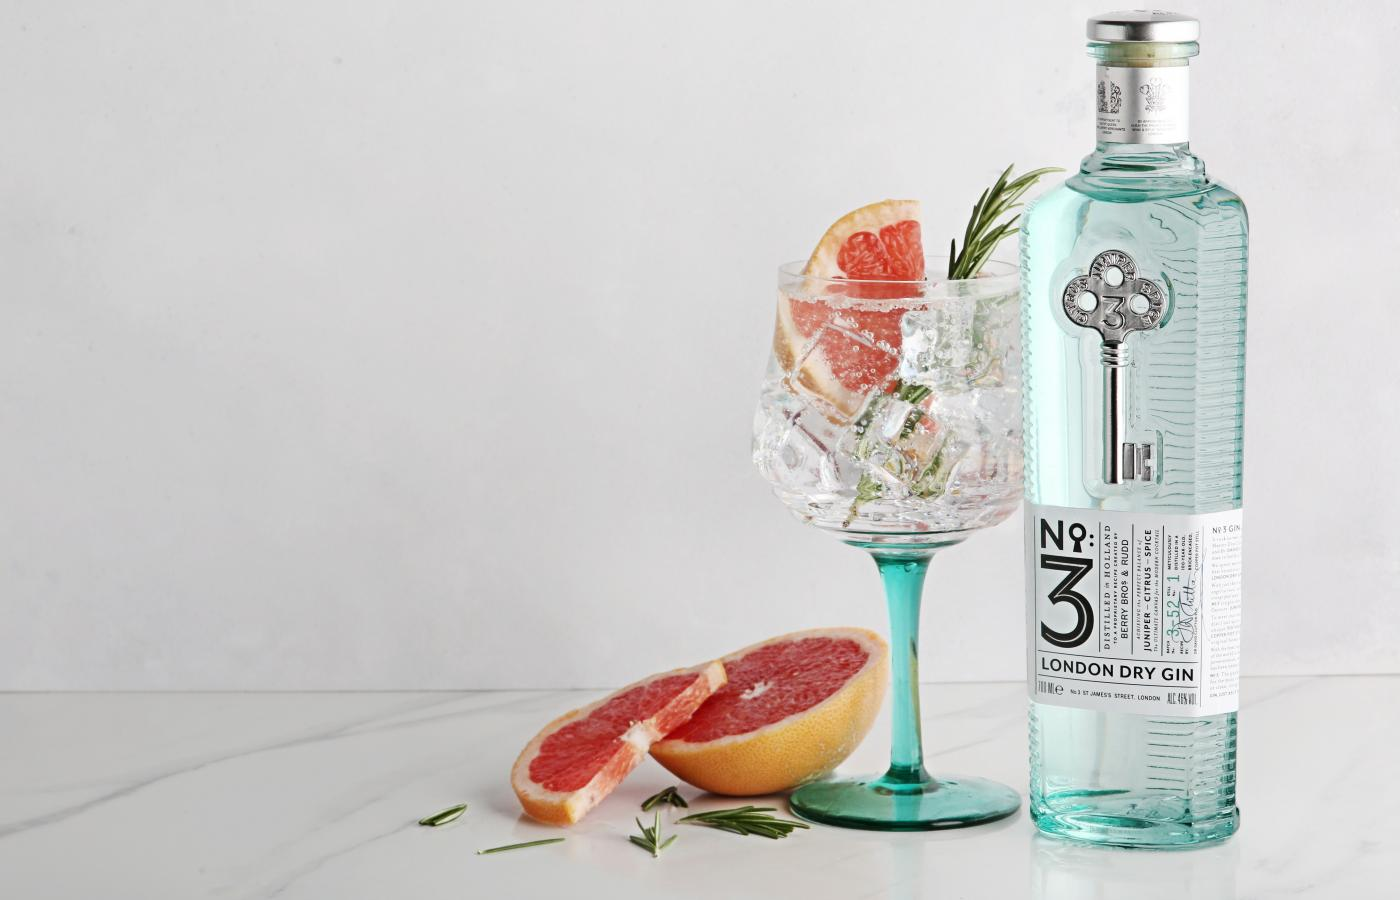 The Ginprint by No.3 Gin is a great shout for liquid refreshment during the London Design Festival 2019.